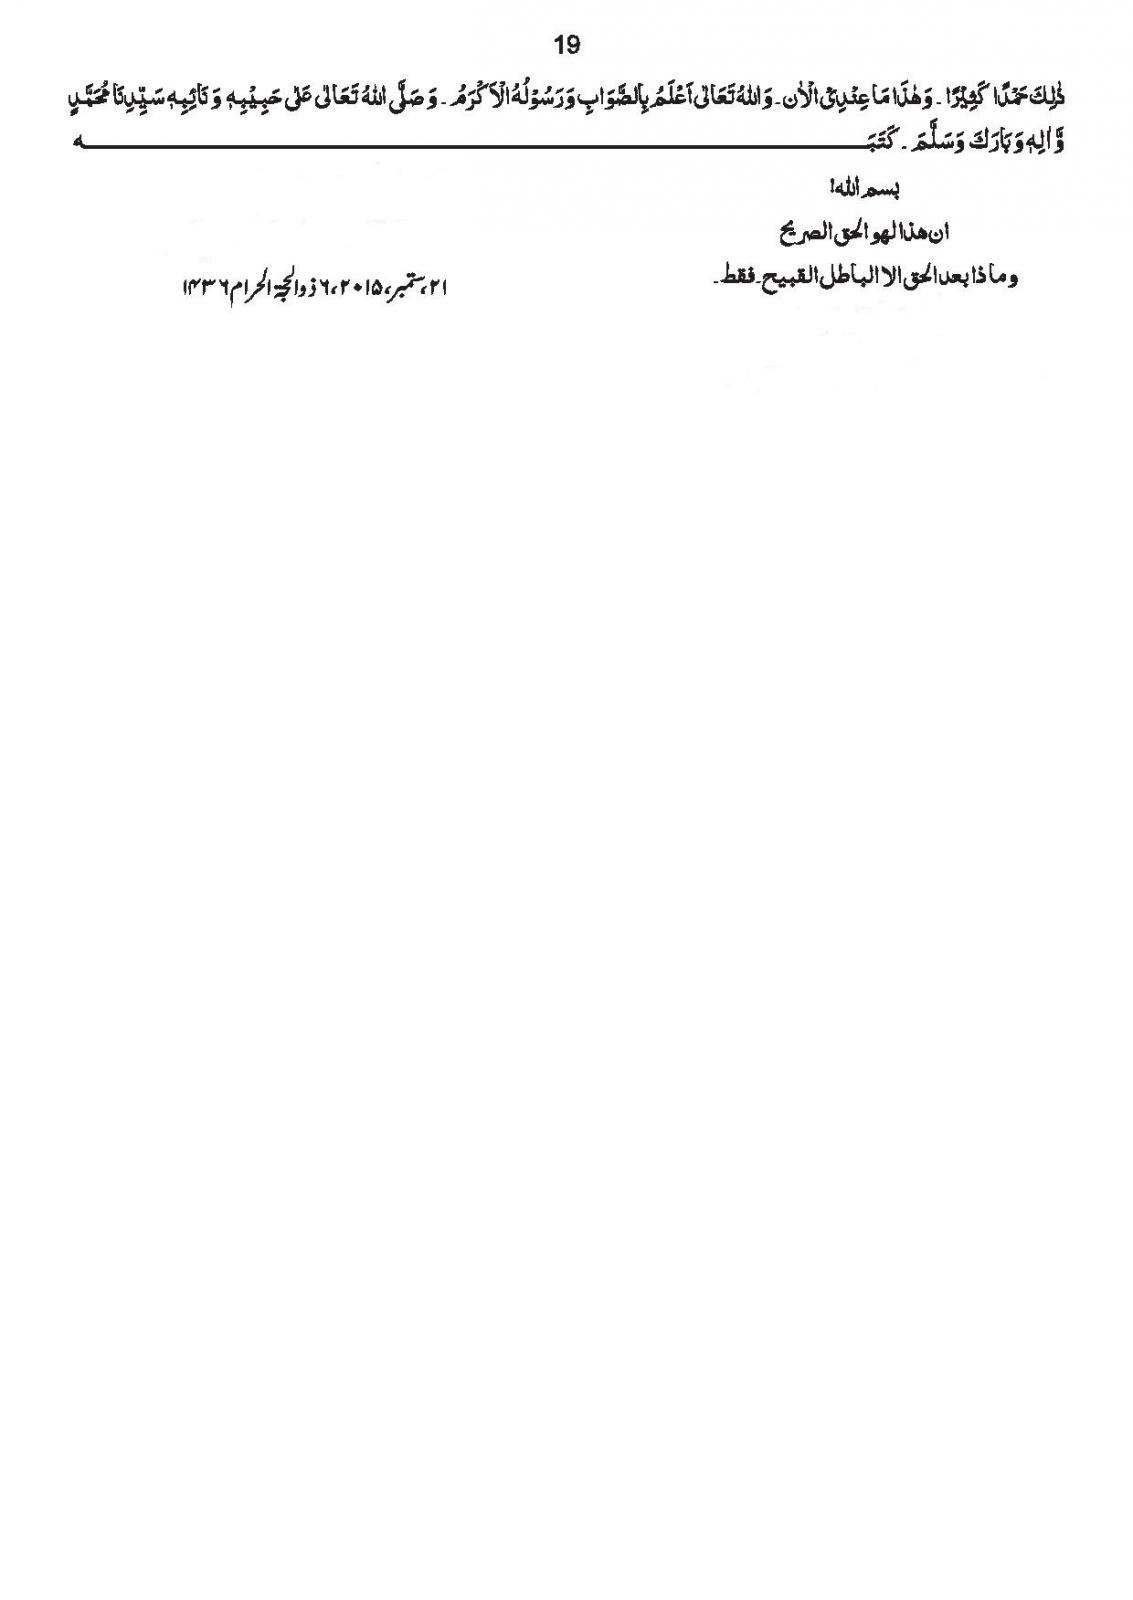 Document-page-019.jpg